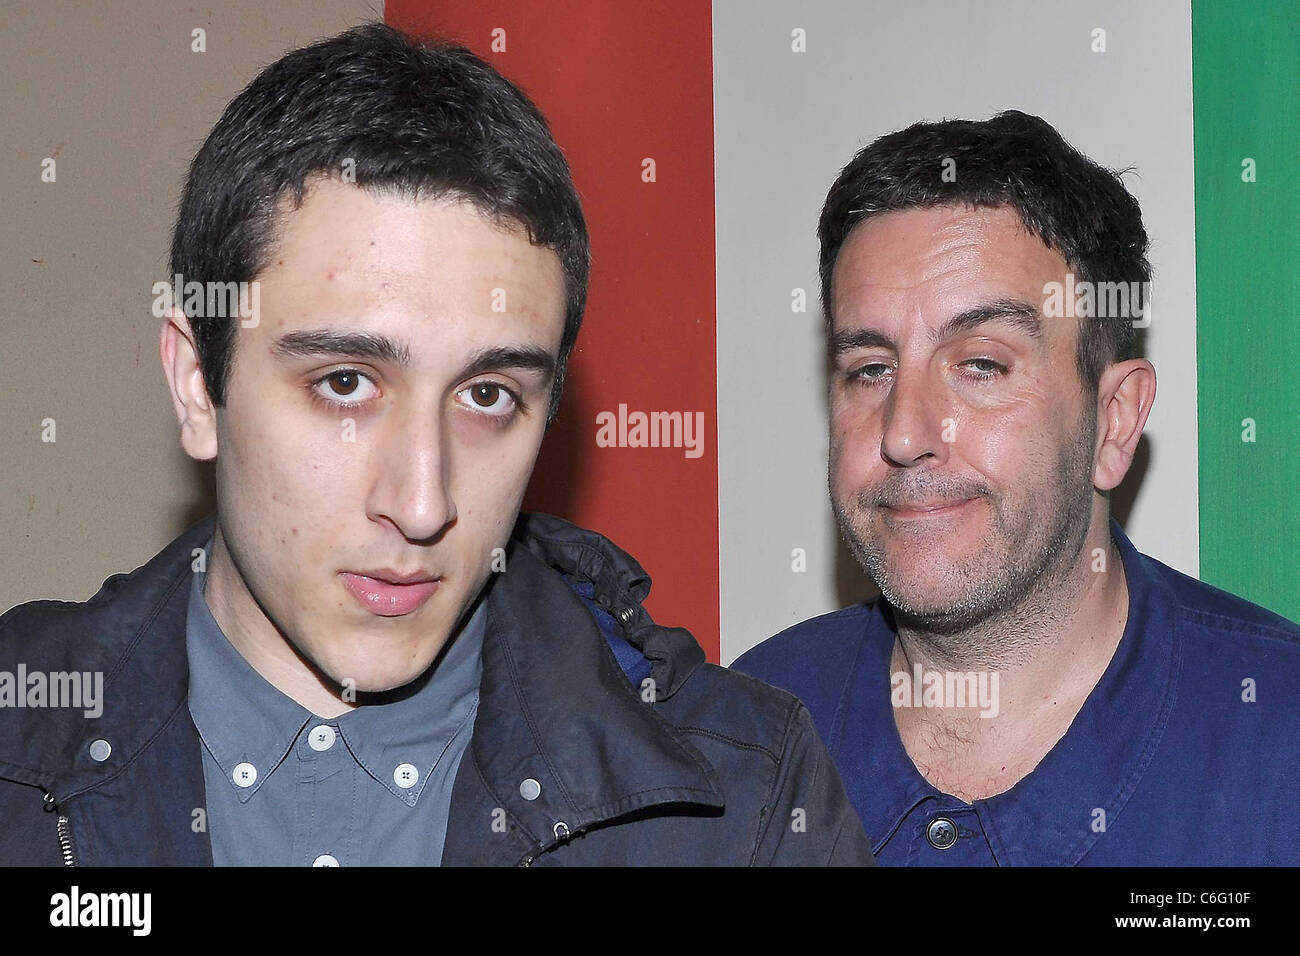 Low-Res abspeichern - the-specials-frontman-terry-hall-and-his-son-felix-temple-house-festival-C6G10F